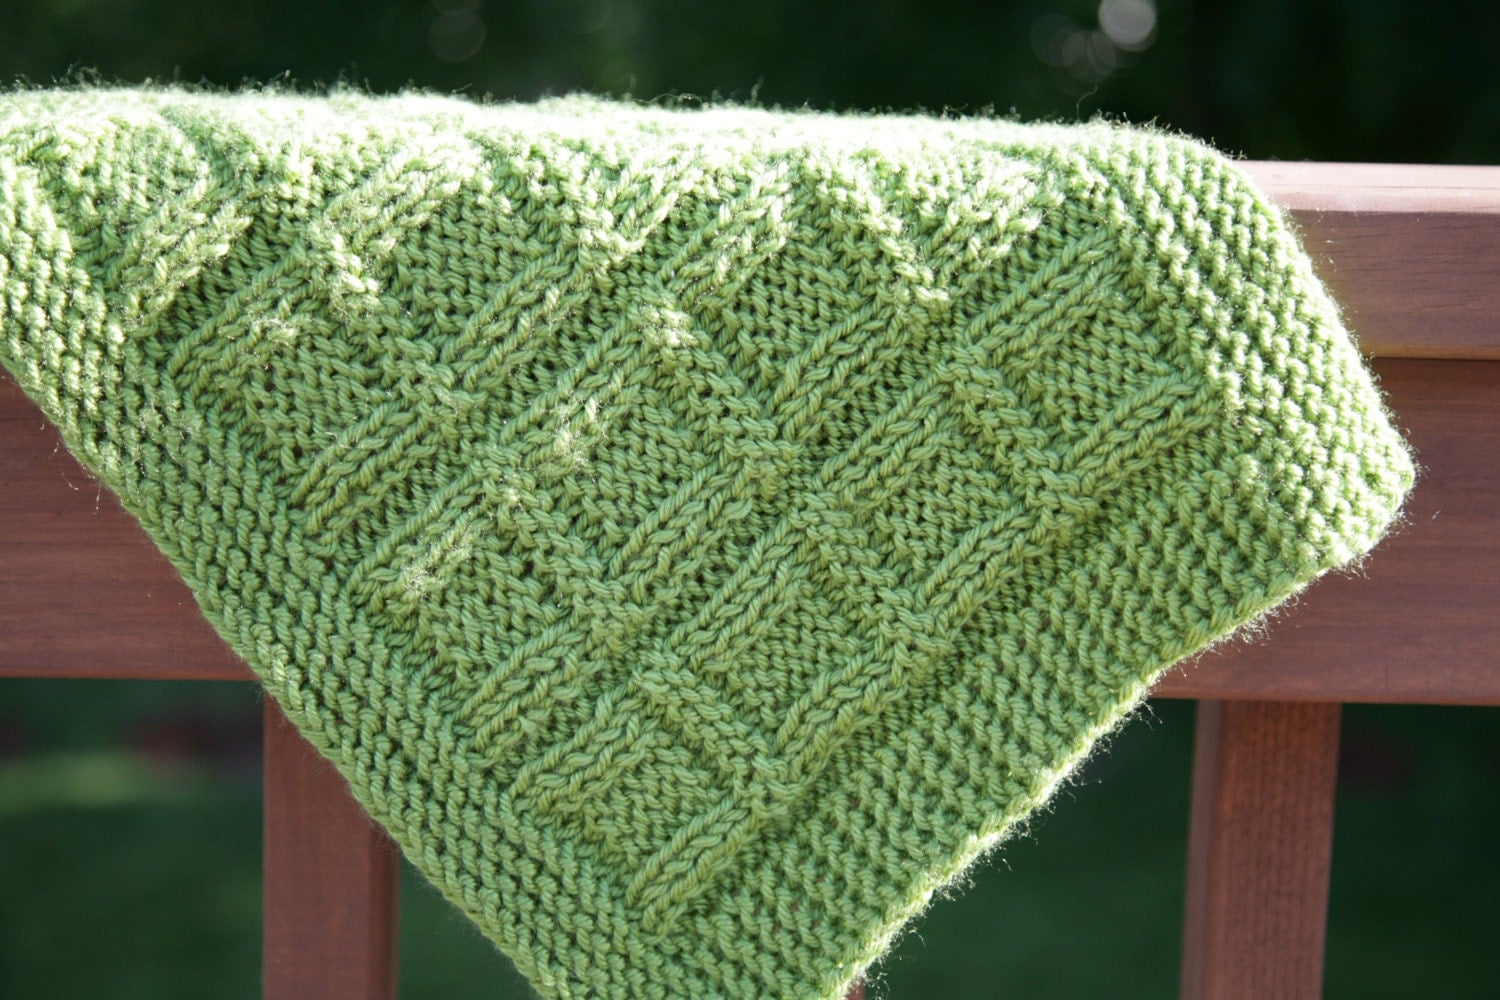 Green Mama Squares baby blanket/ afghan textured knit